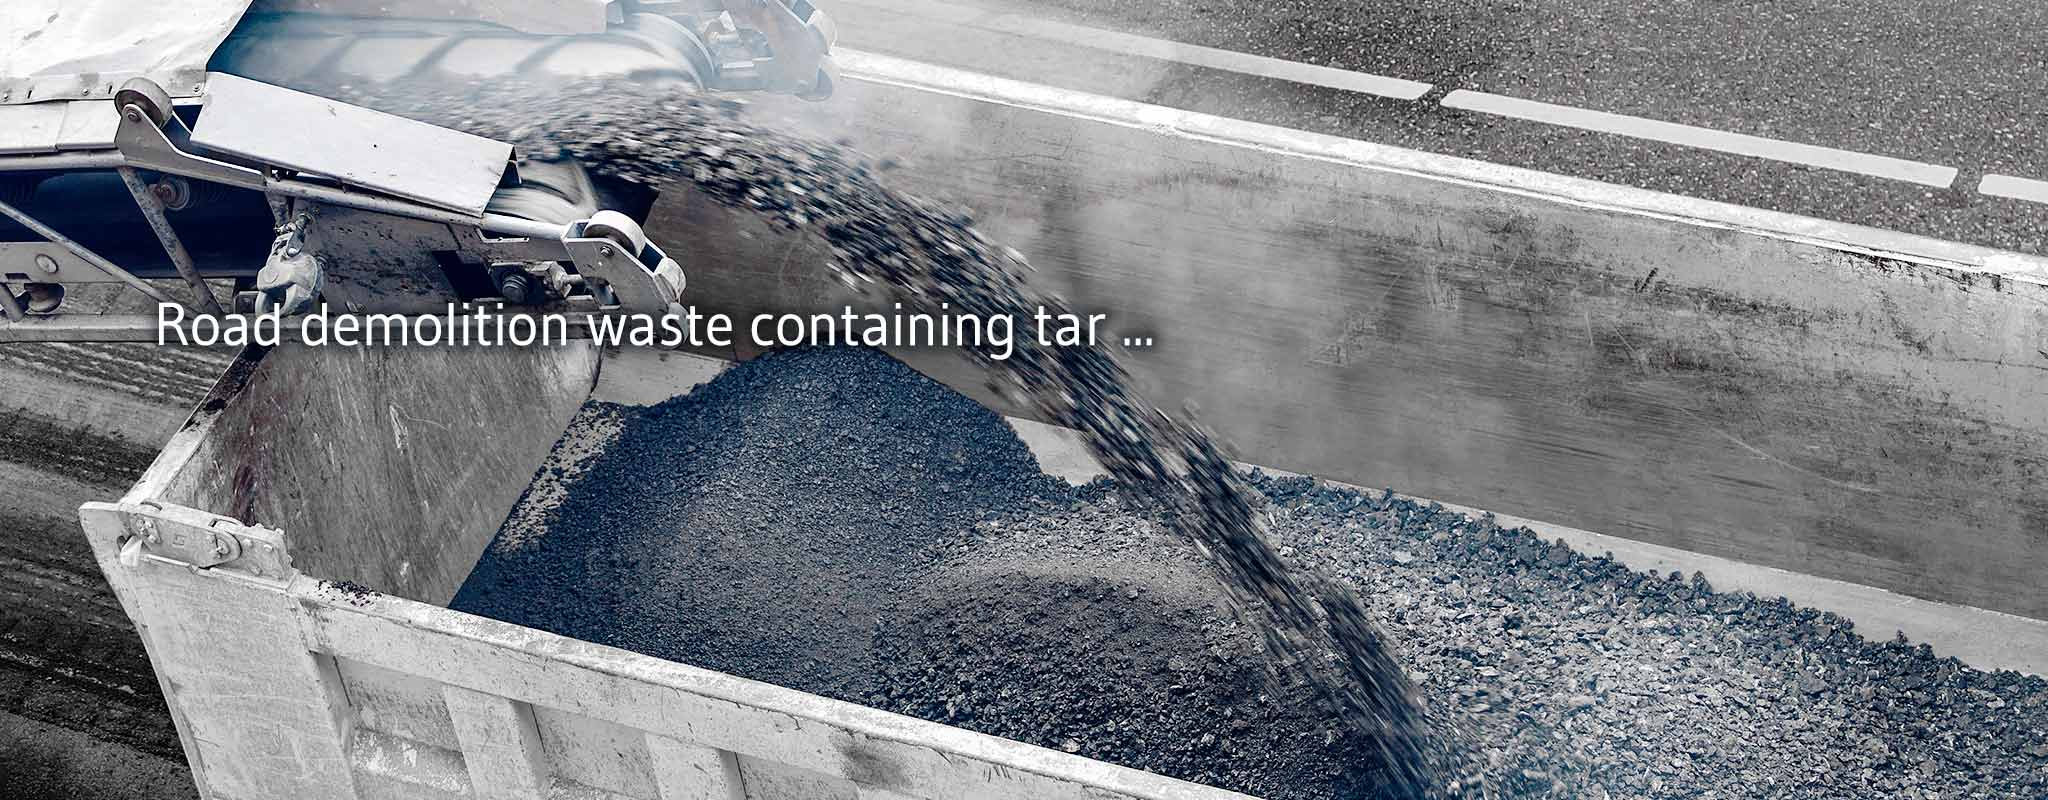 Ecological recycling alternatives for tar contaminated road rubble